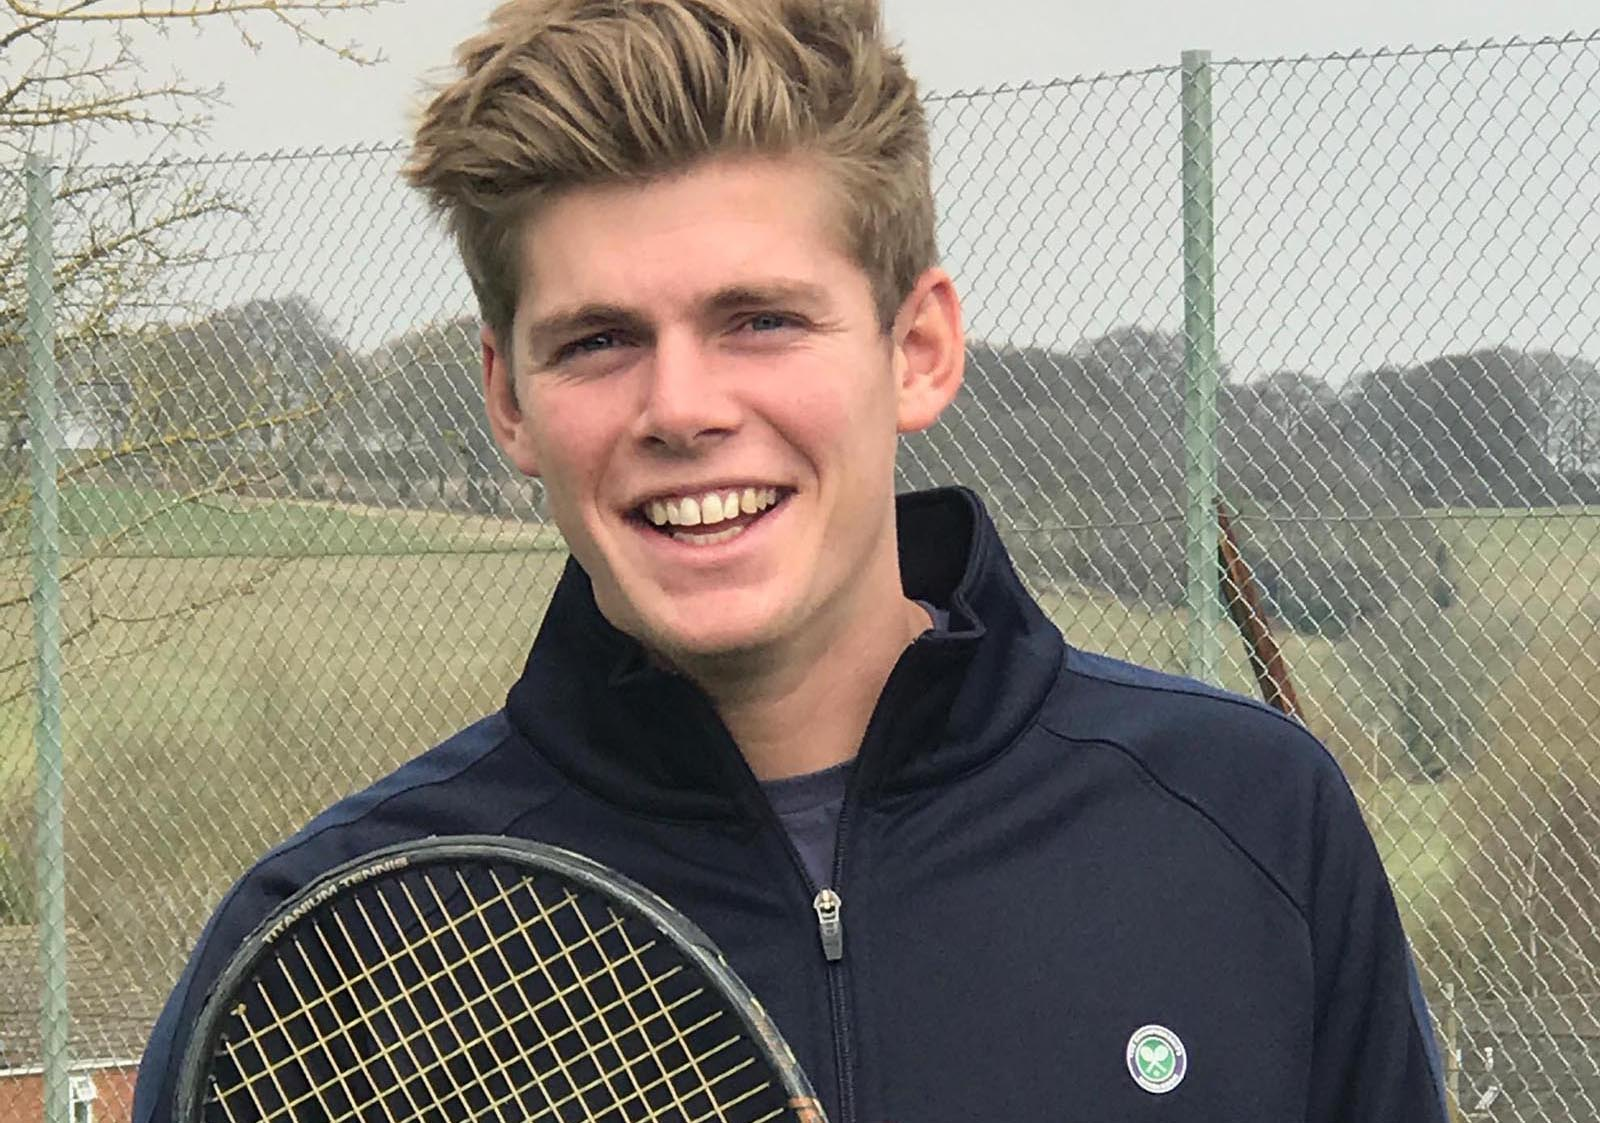 Paddy Watts - We are delighted to announce the appointment of new coach Paddy Watts. As well as being level 2 (soon to be level 3) qualified, Paddy brings with him an infectious enthusiasm for tennis. Paddy is committed to making tennis fun and engaging for all members. For any coaching enquiries contact Paddy on 07414 933 323 or email tennisforallcoaching@gmail.com